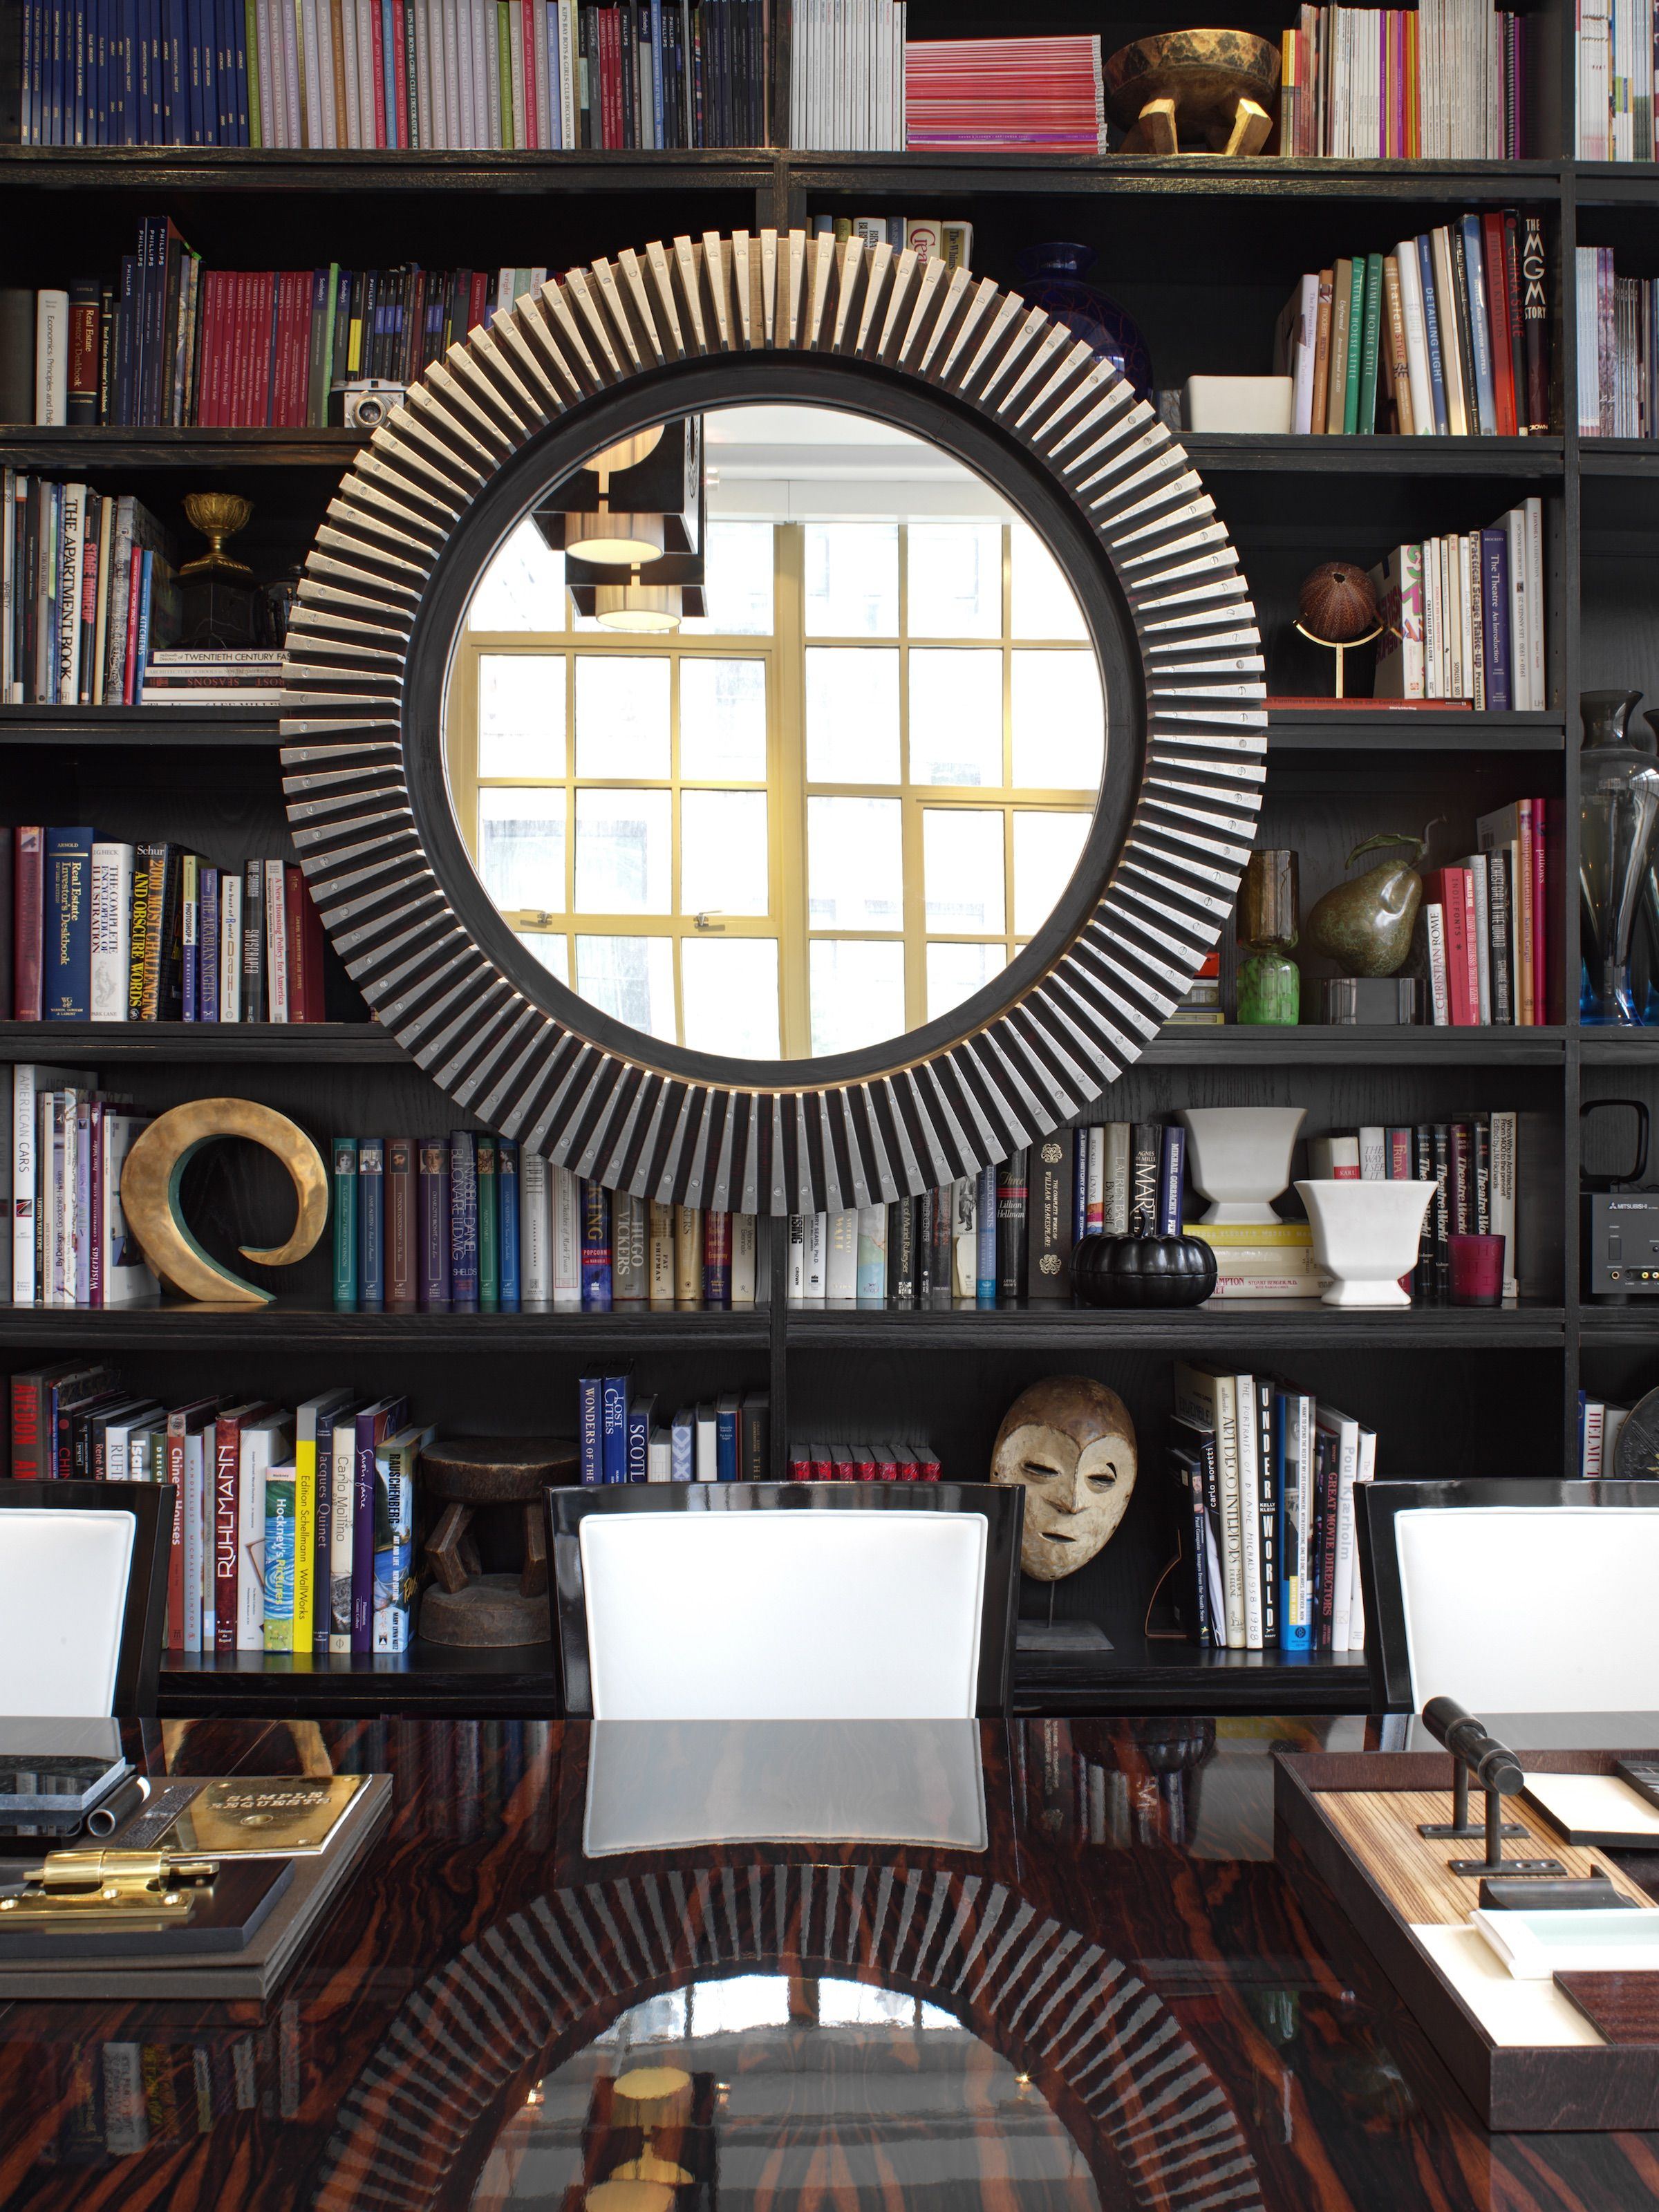 Interior Design Library Room: A Large-scale Mirror Throws A Curve To My Library